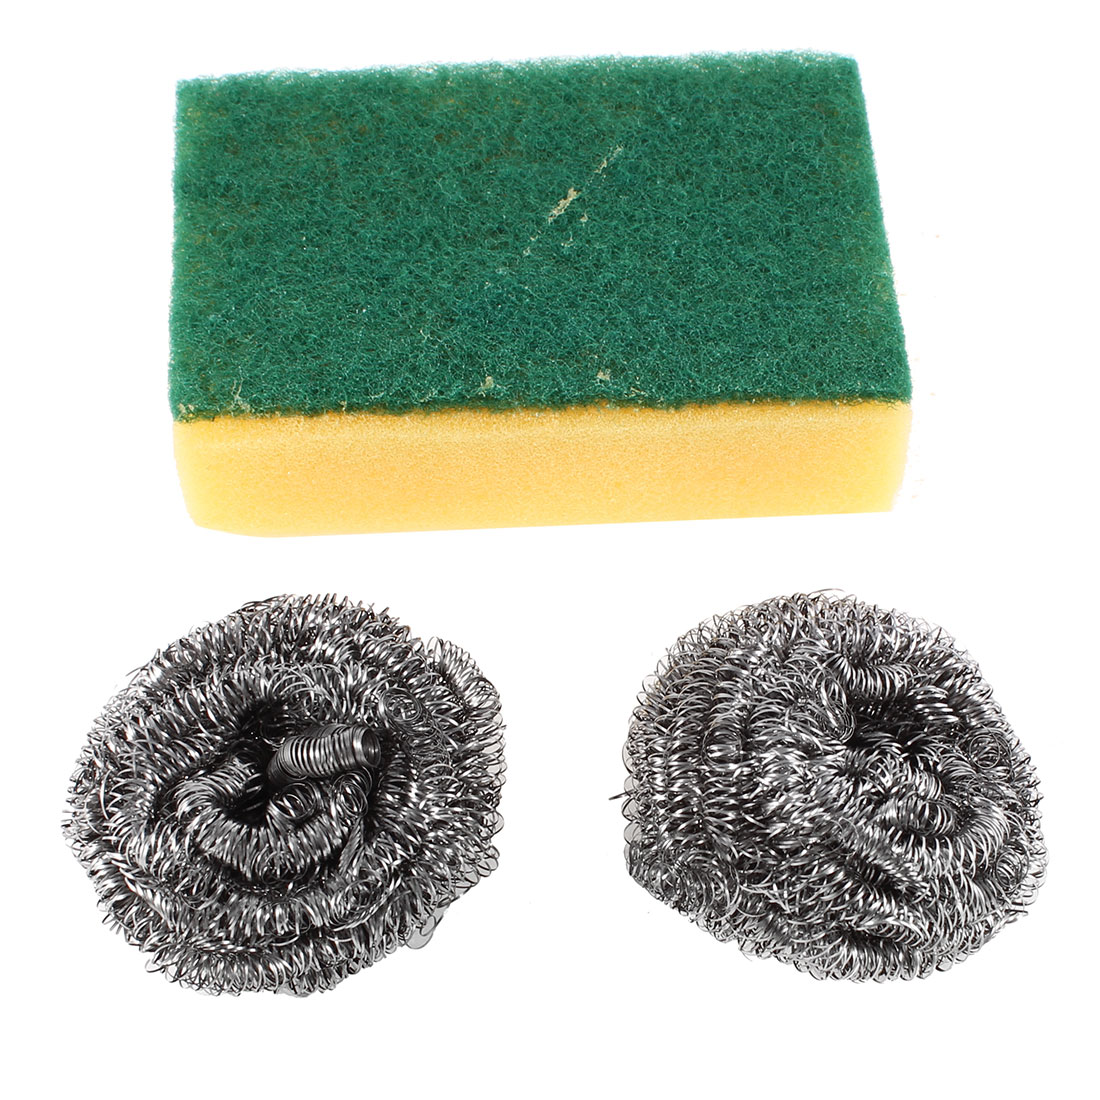 1 Pcs Yellow Green Scouring Pad 2 Pcs Metal Cleaning Ball